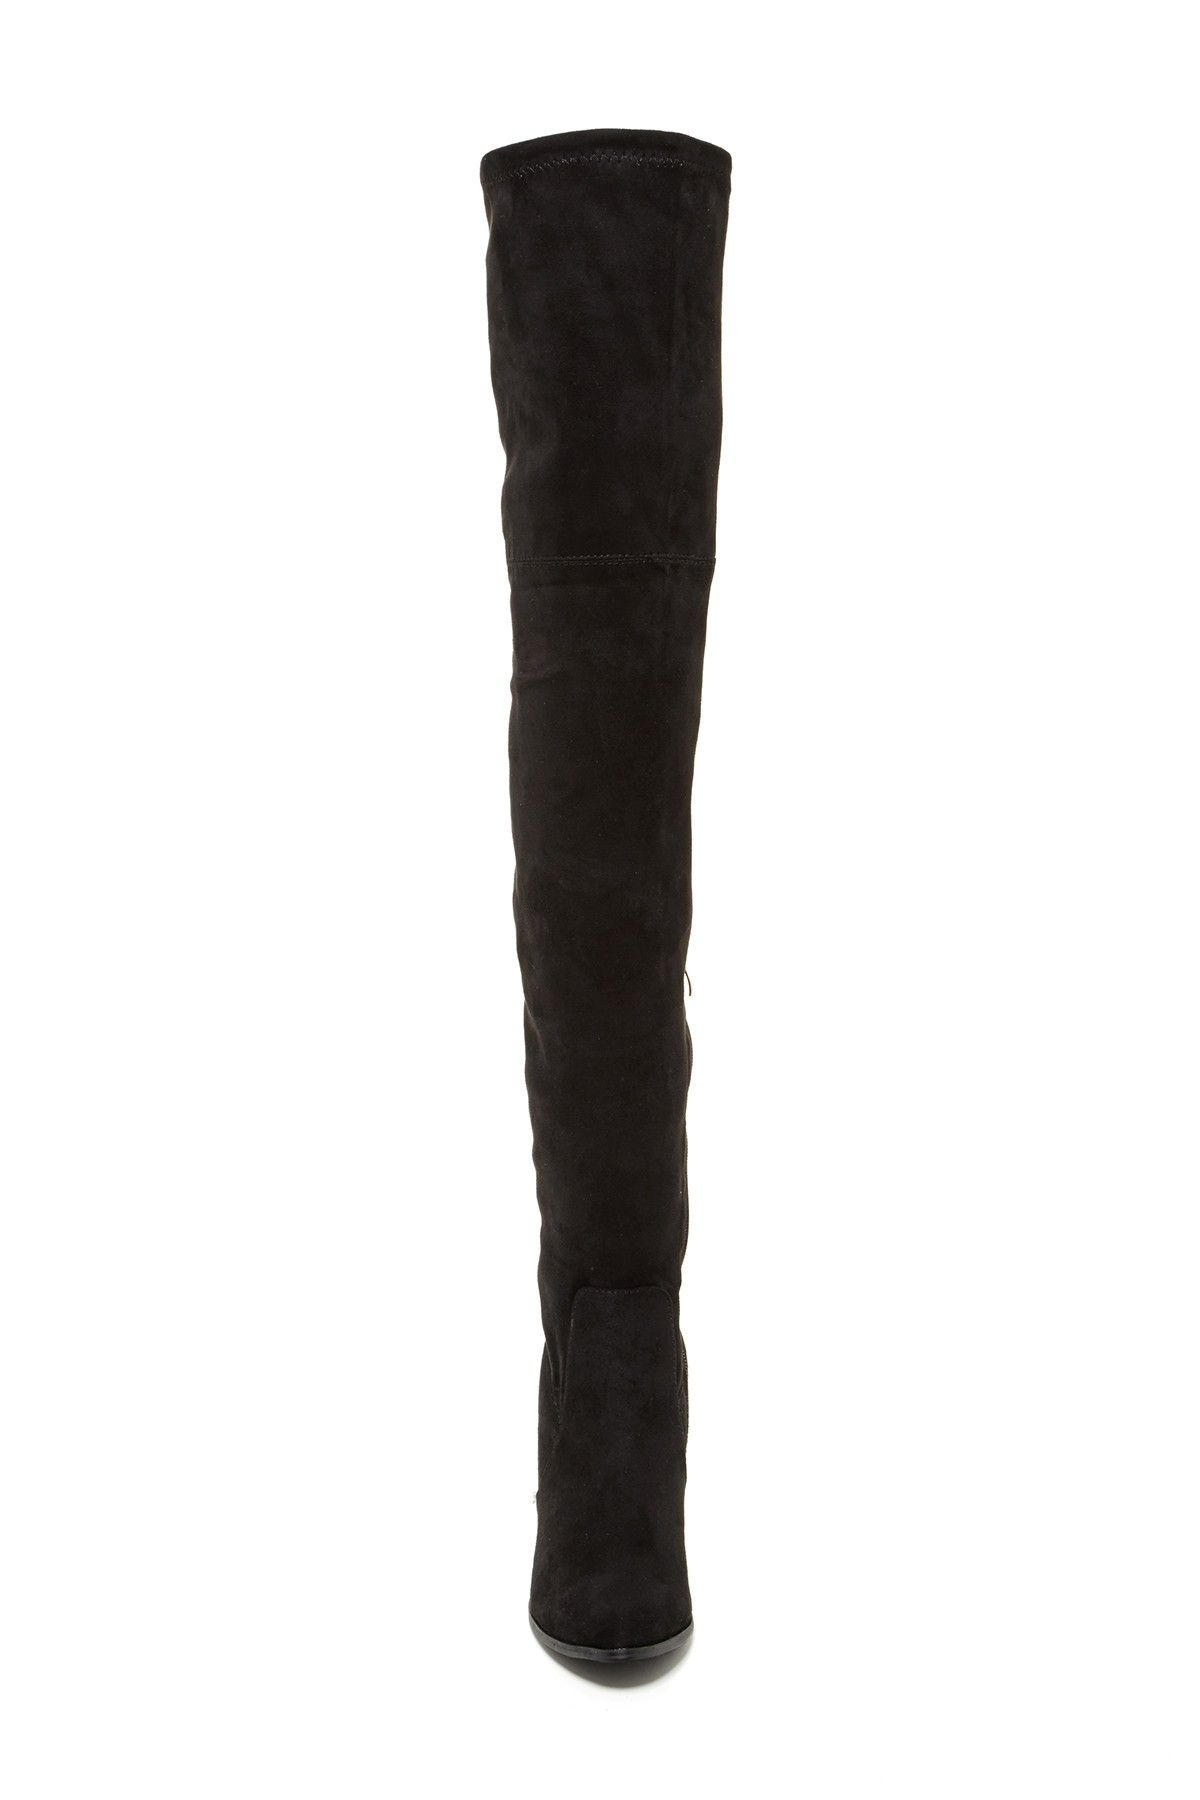 b63053e4aa2 Sorcha Faux Fur Lined Over-the-Knee Boot by Catherine Catherine Malandrino  on  nordstrom rack